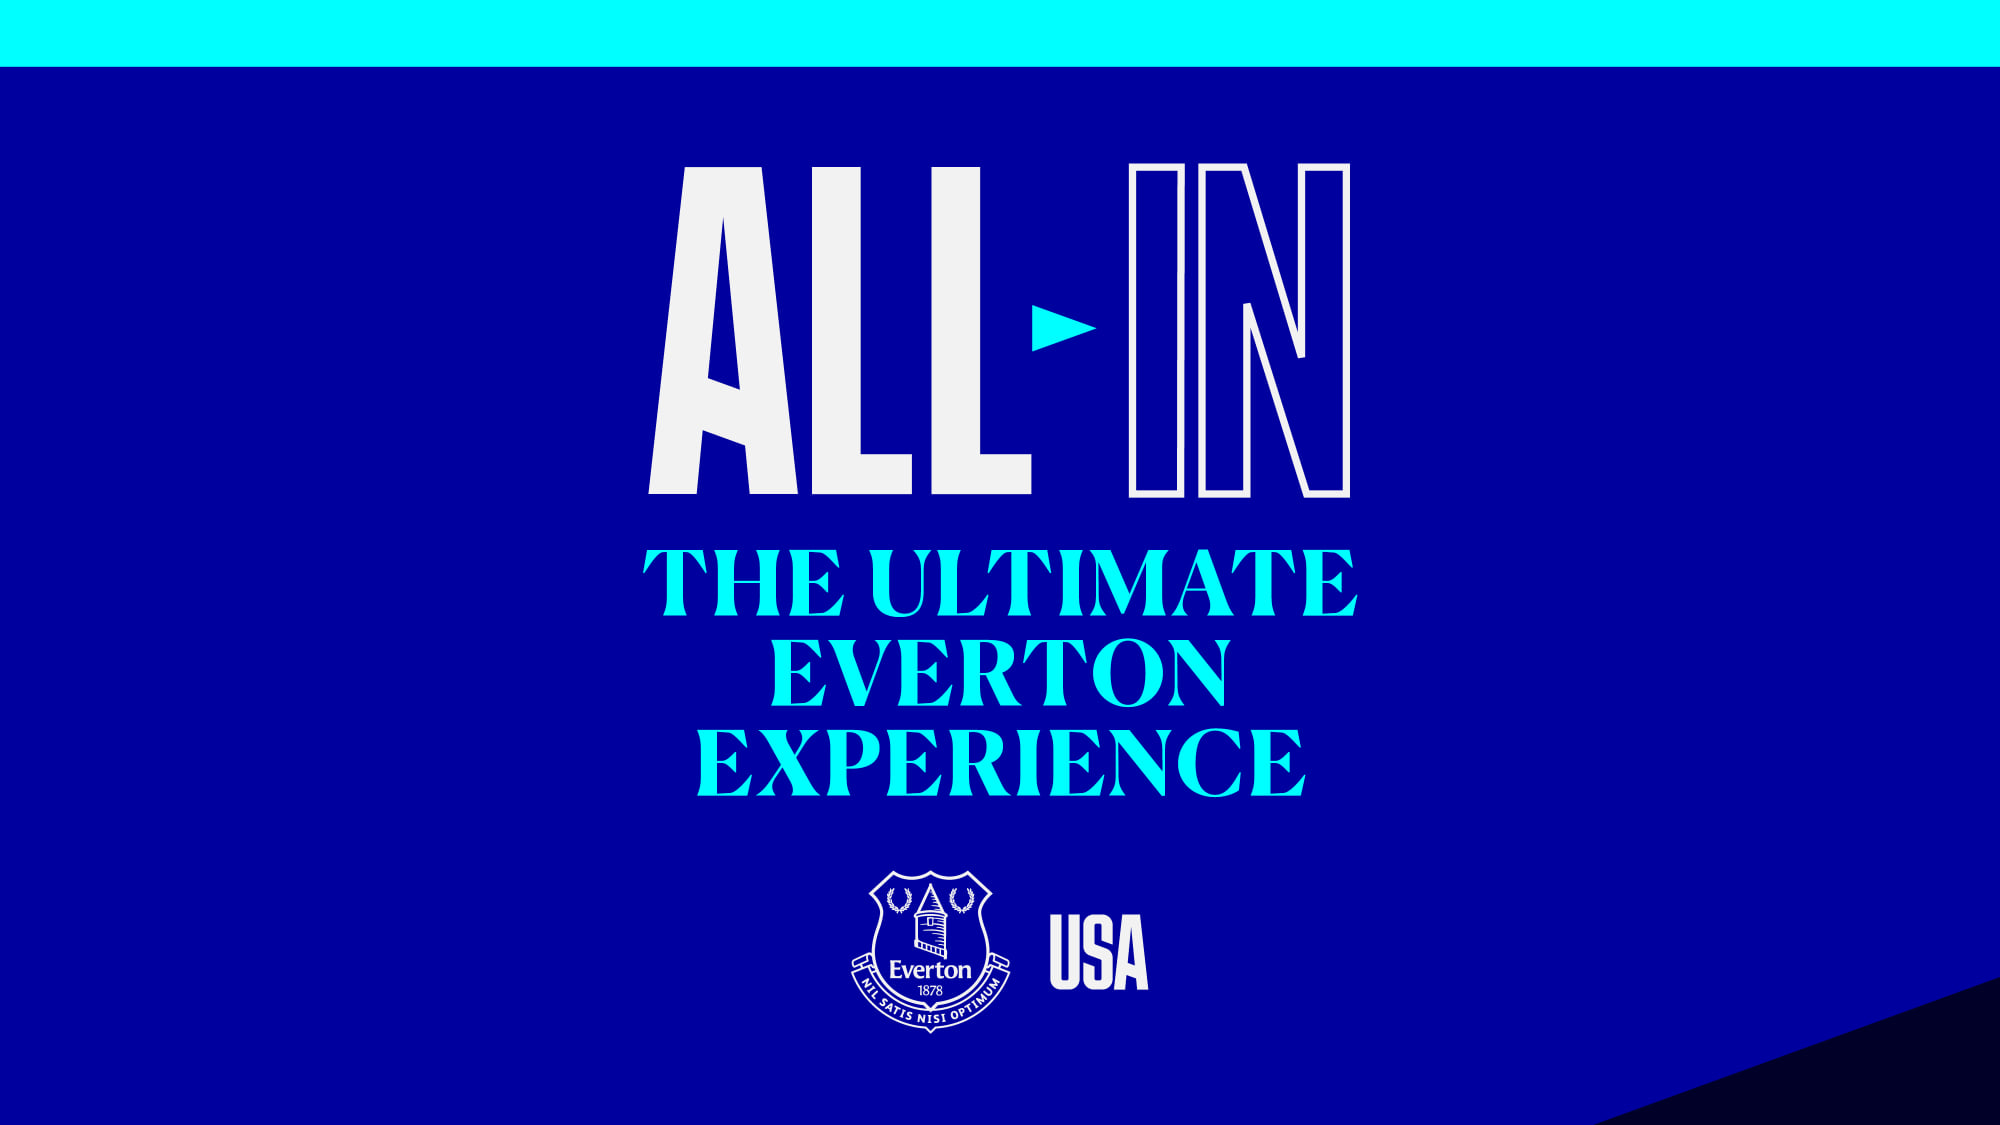 US Blues Offered Chance To Win Trip Of A Lifetime